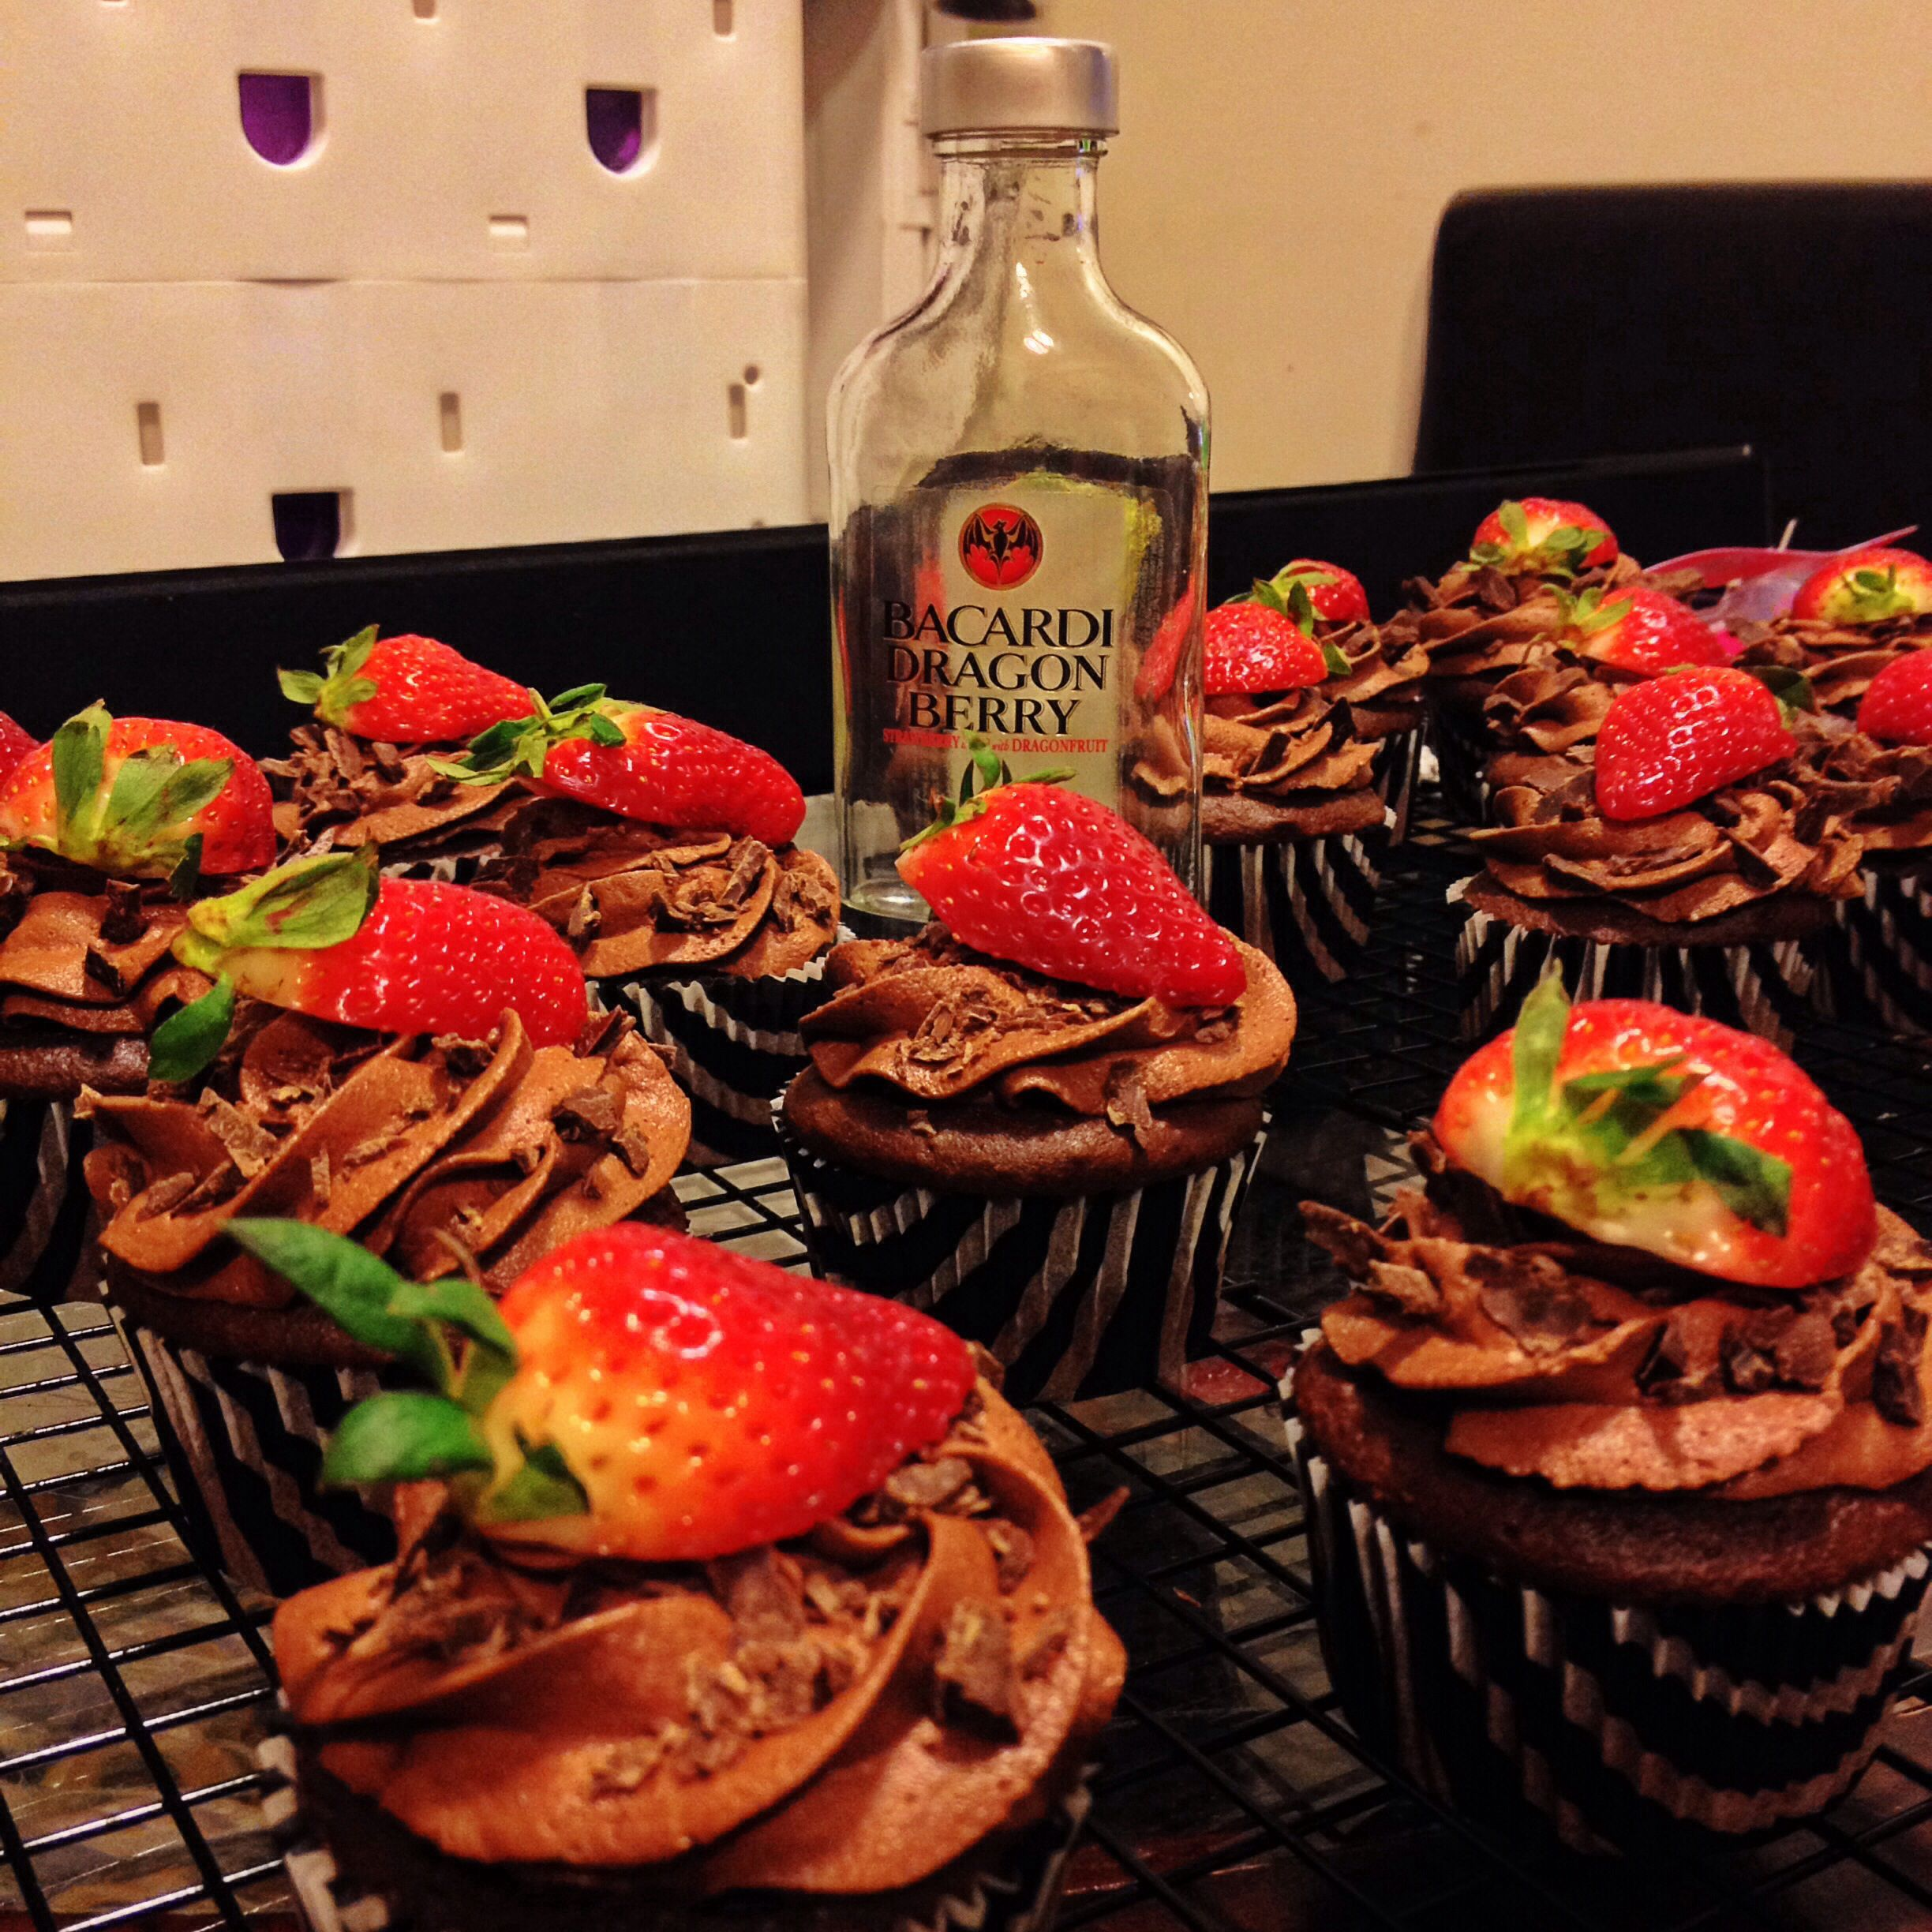 I Call Them The Devils Advocate Devils Food Cupcake Infused With Bacardi Dragonberry Cho Alcohol Infused Dessert Alcoholic Desserts Baked Dessert Recipes